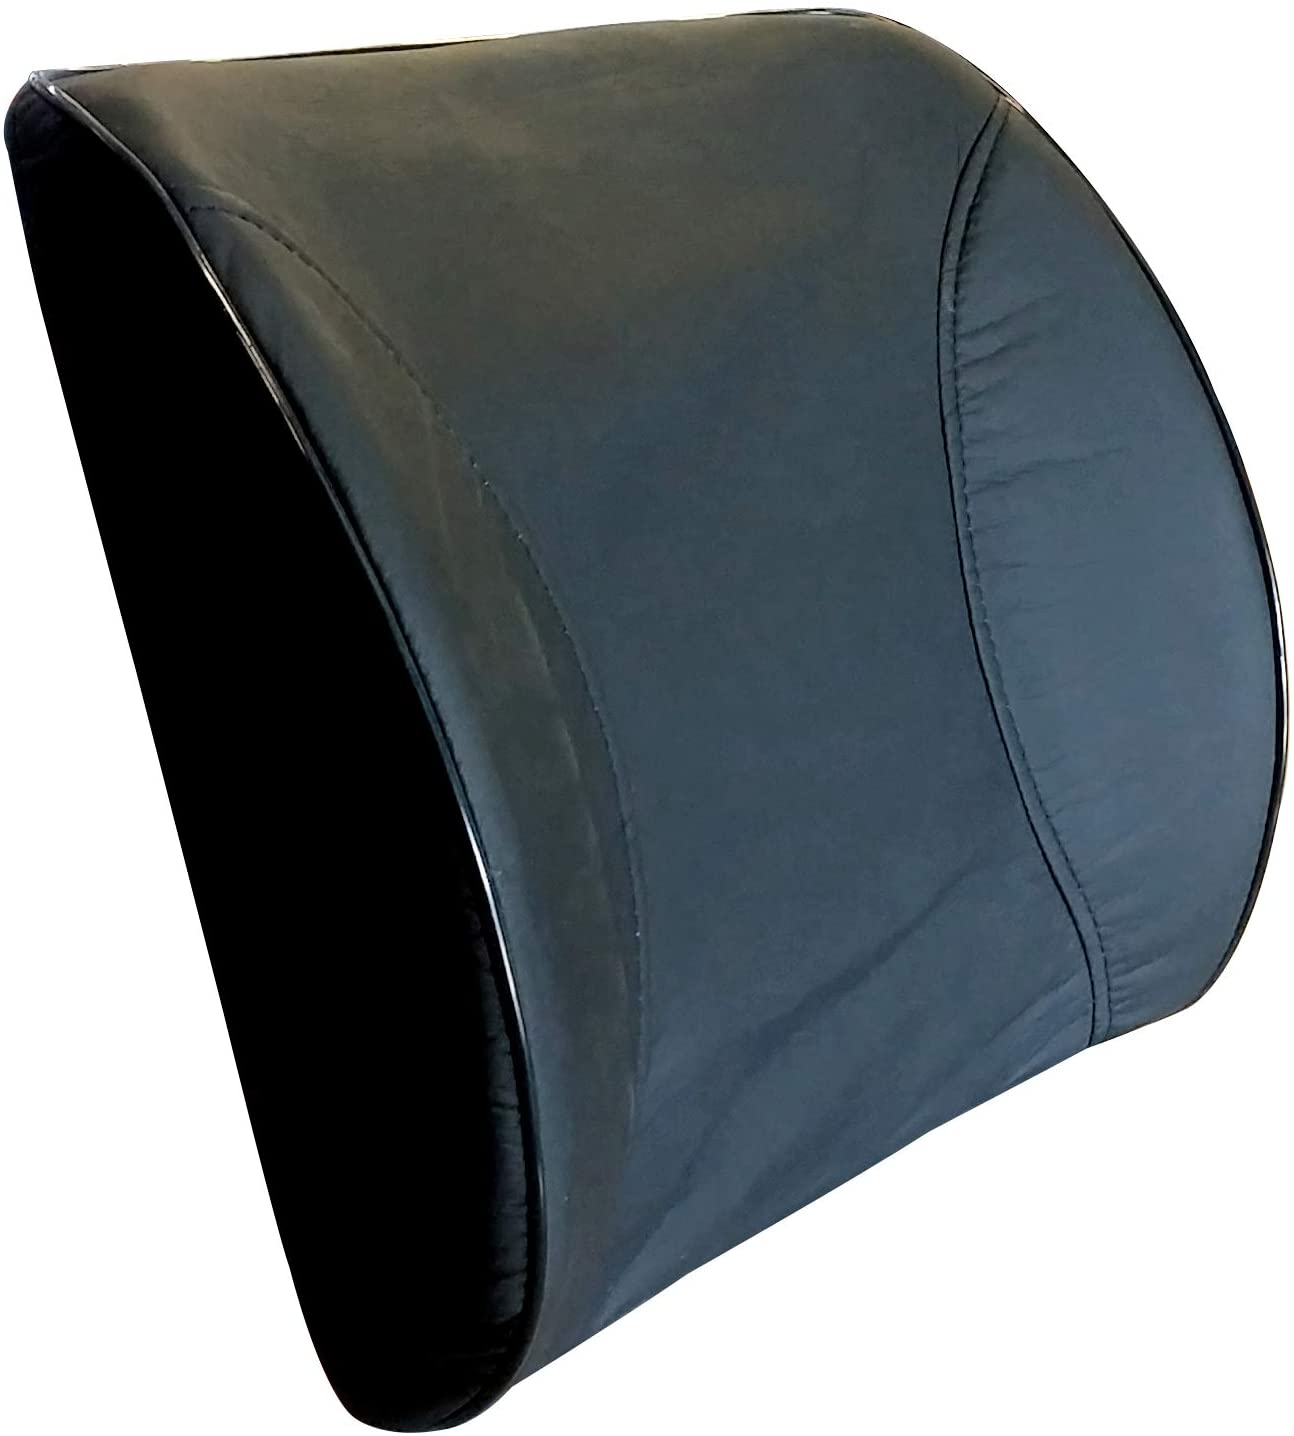 ALLBrand Car Truck Office, Chair Faux Leather Lumbar Support Pillow Memory Form Back Cushion (Black)